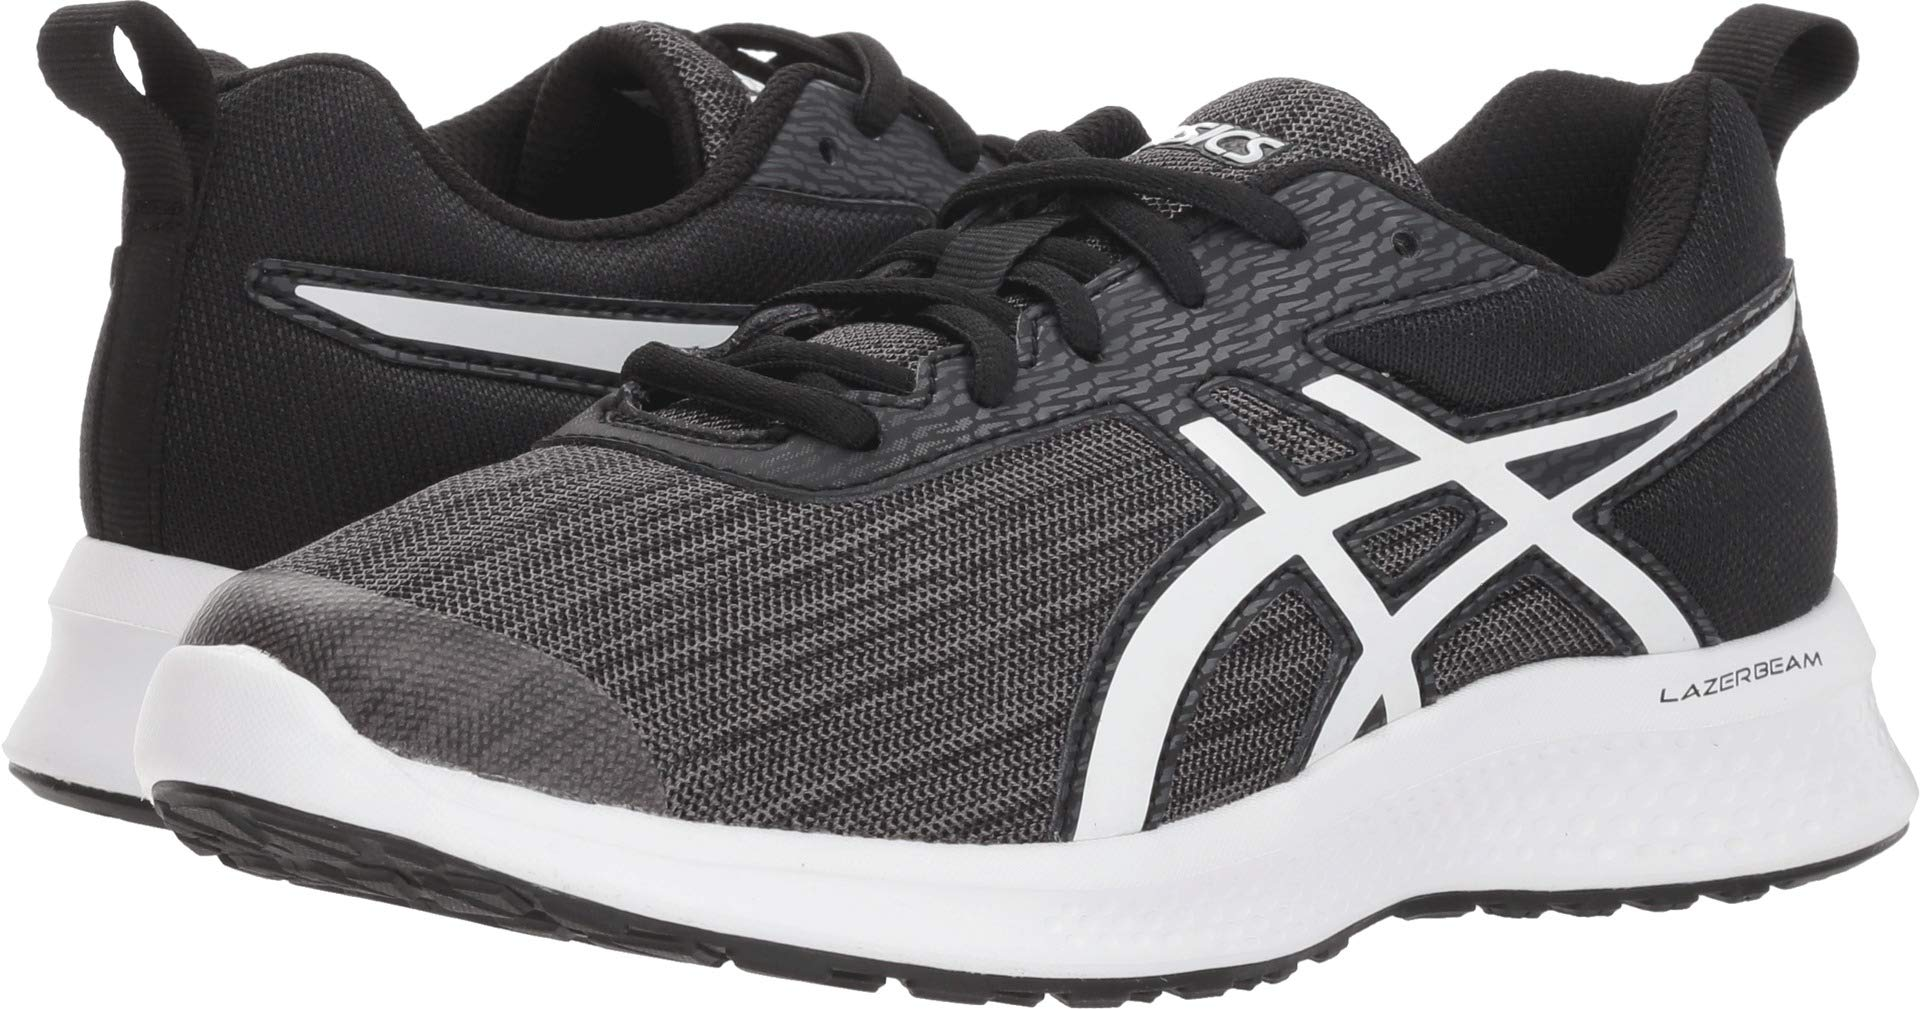 ASICS Kids Boy's Lazerbeam EA (Little Kid/Big Kid) Black/White 1 M US Little Kid M